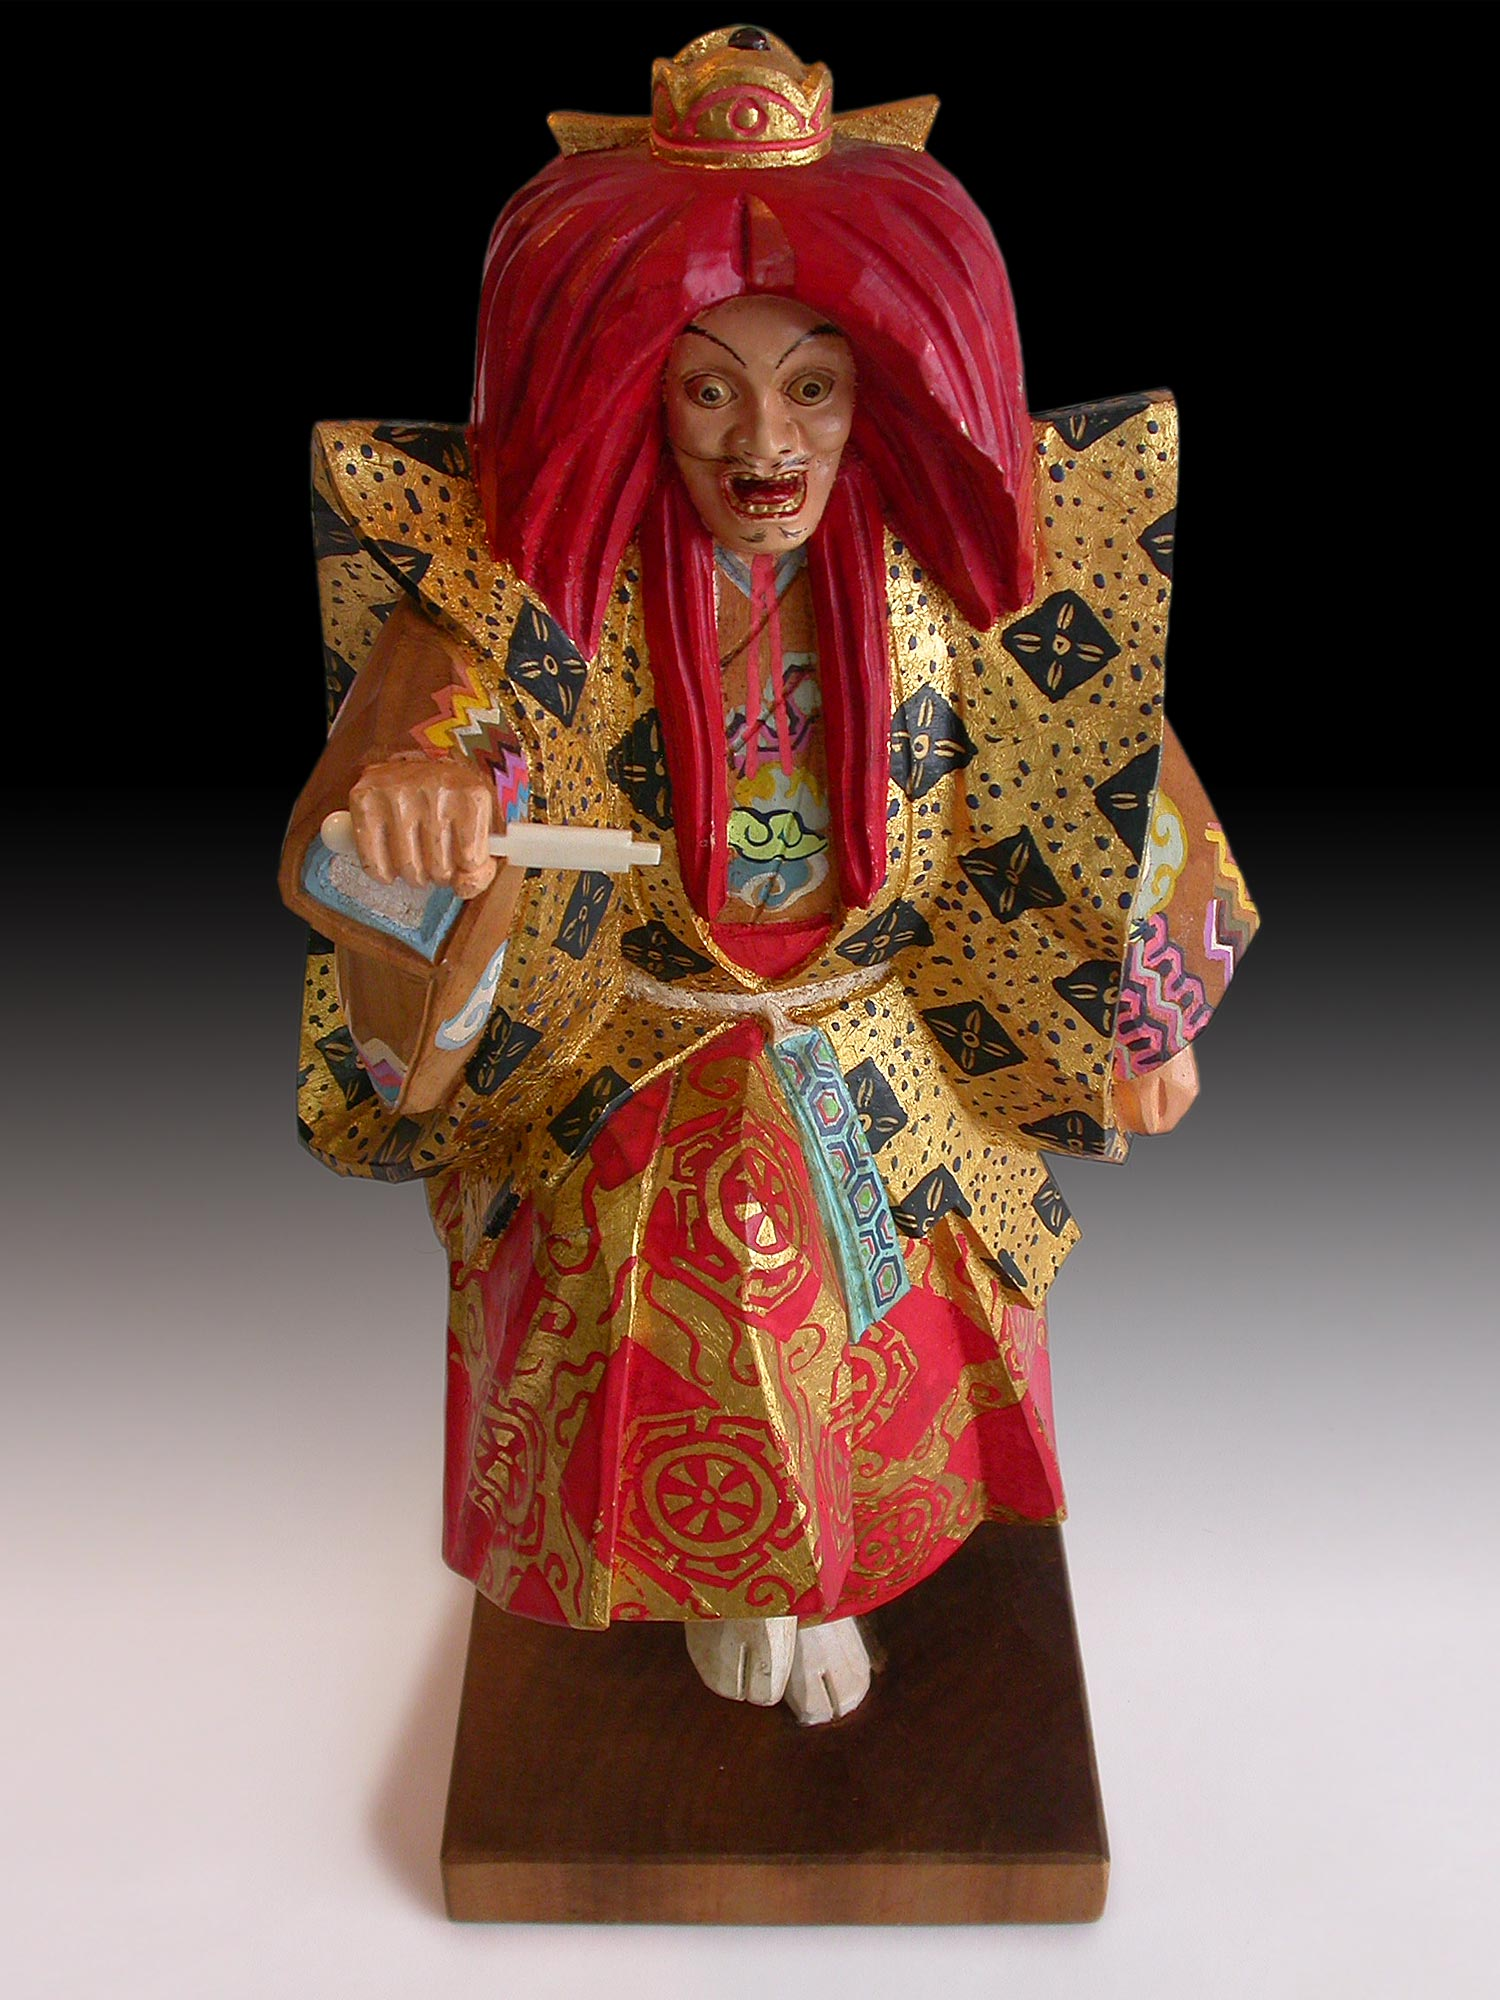 Kurama Tengu Sojobo Polychrome Gold Leaf Showa Wood Carving Signed 鞍馬天狗